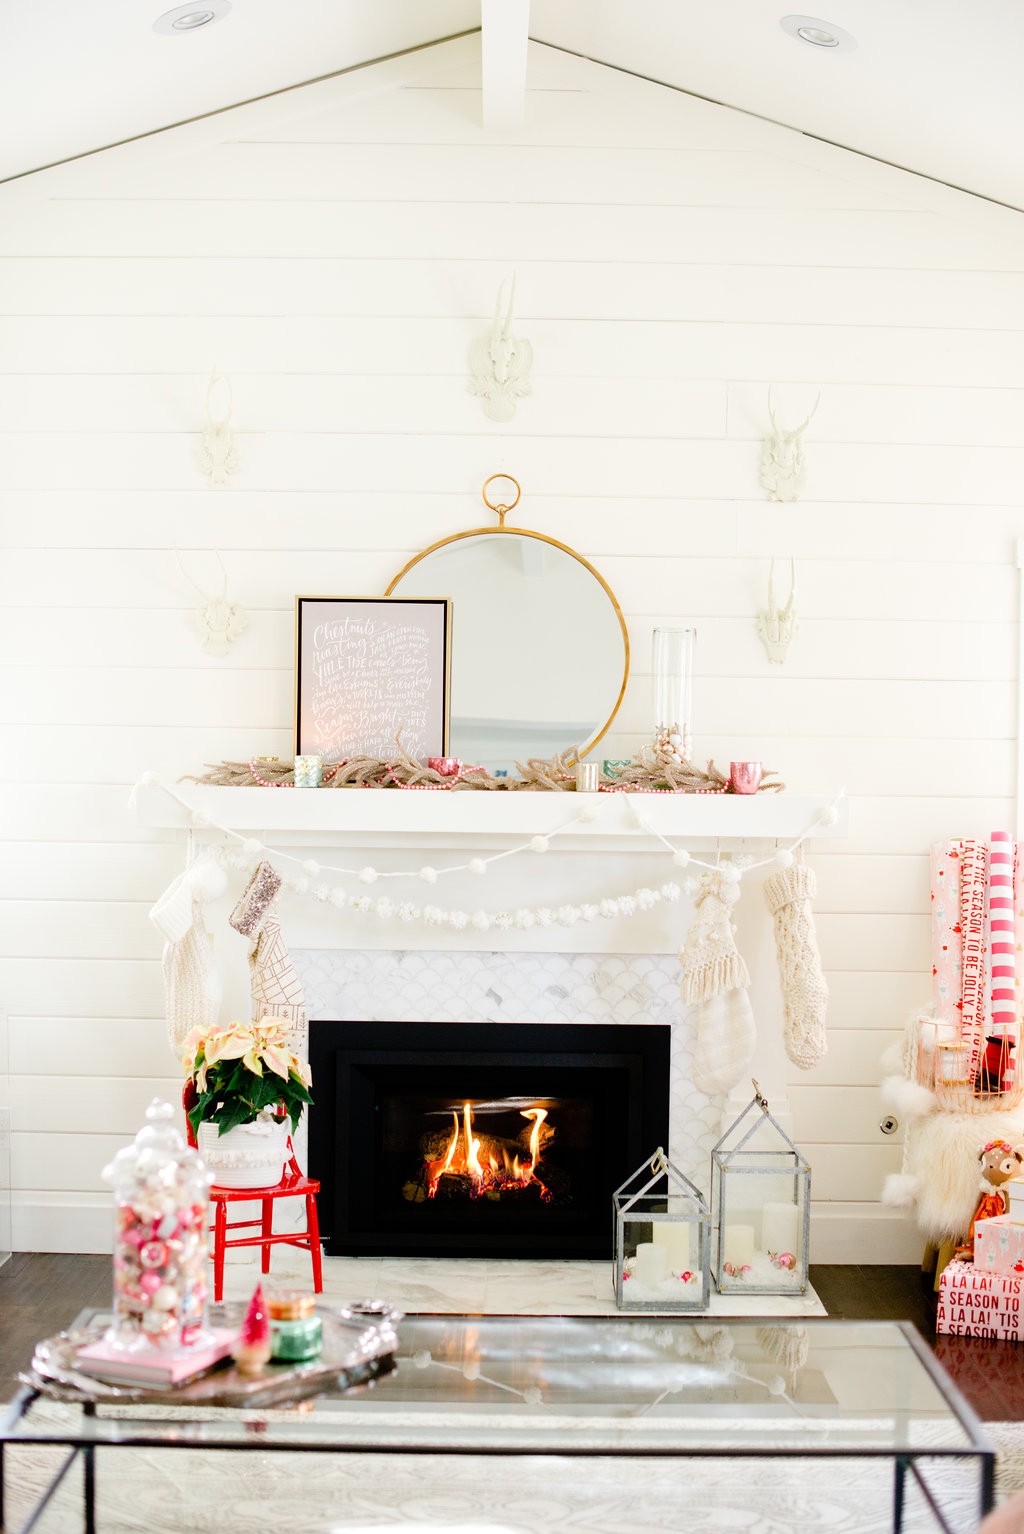 Holiday home tour - A Very Vintage Christmas